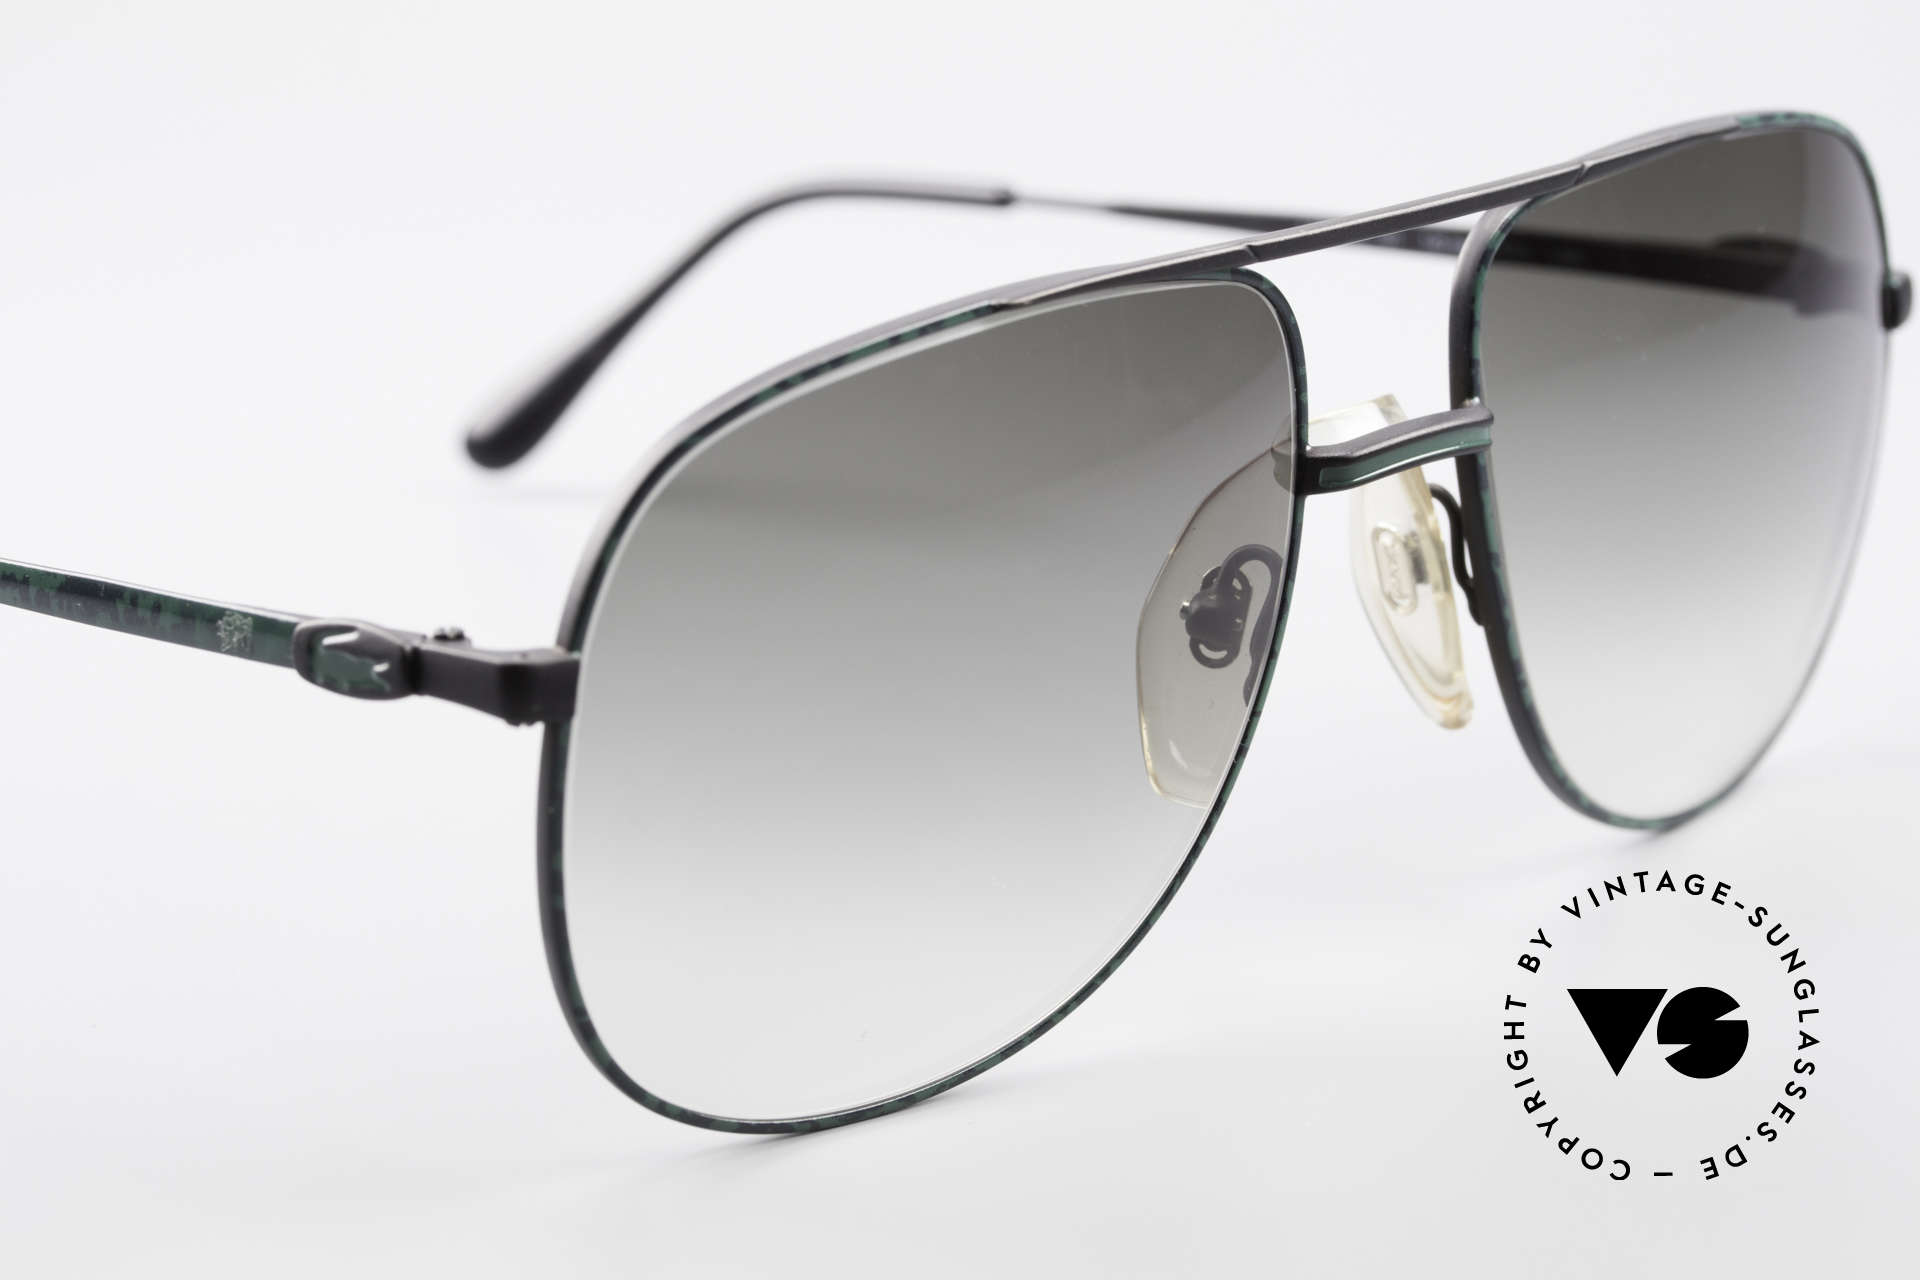 Lacoste 101 Sporty Aviator Sunglasses XL, model 101 = the downright classic by Lacoste, a legend!, Made for Men